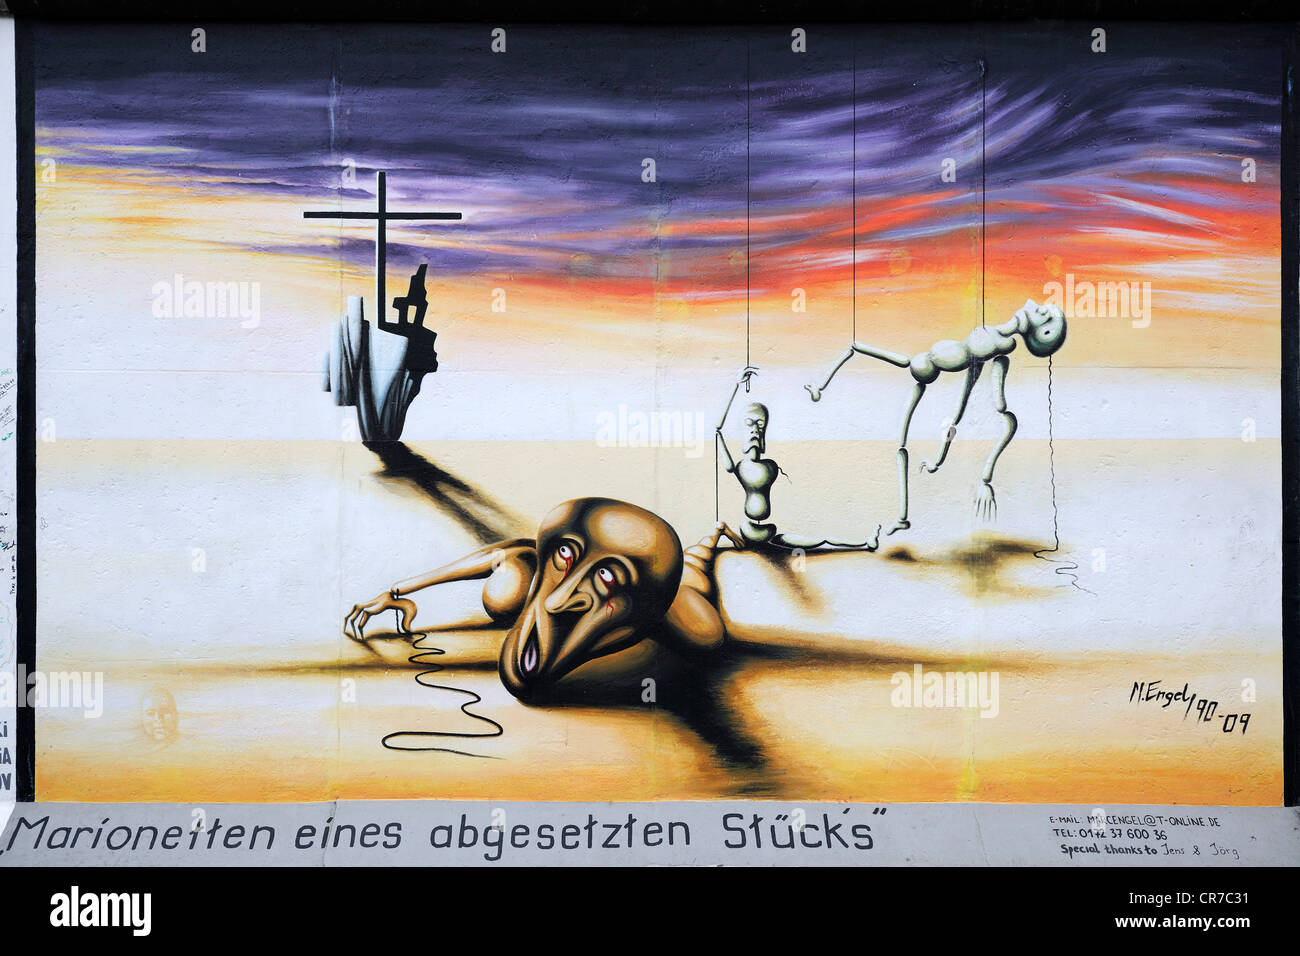 Marionetten eines abgesetzten Stuecks, Puppets of a cancelled play, by Marc Engel, painting on the Berlin Wall - Stock Image